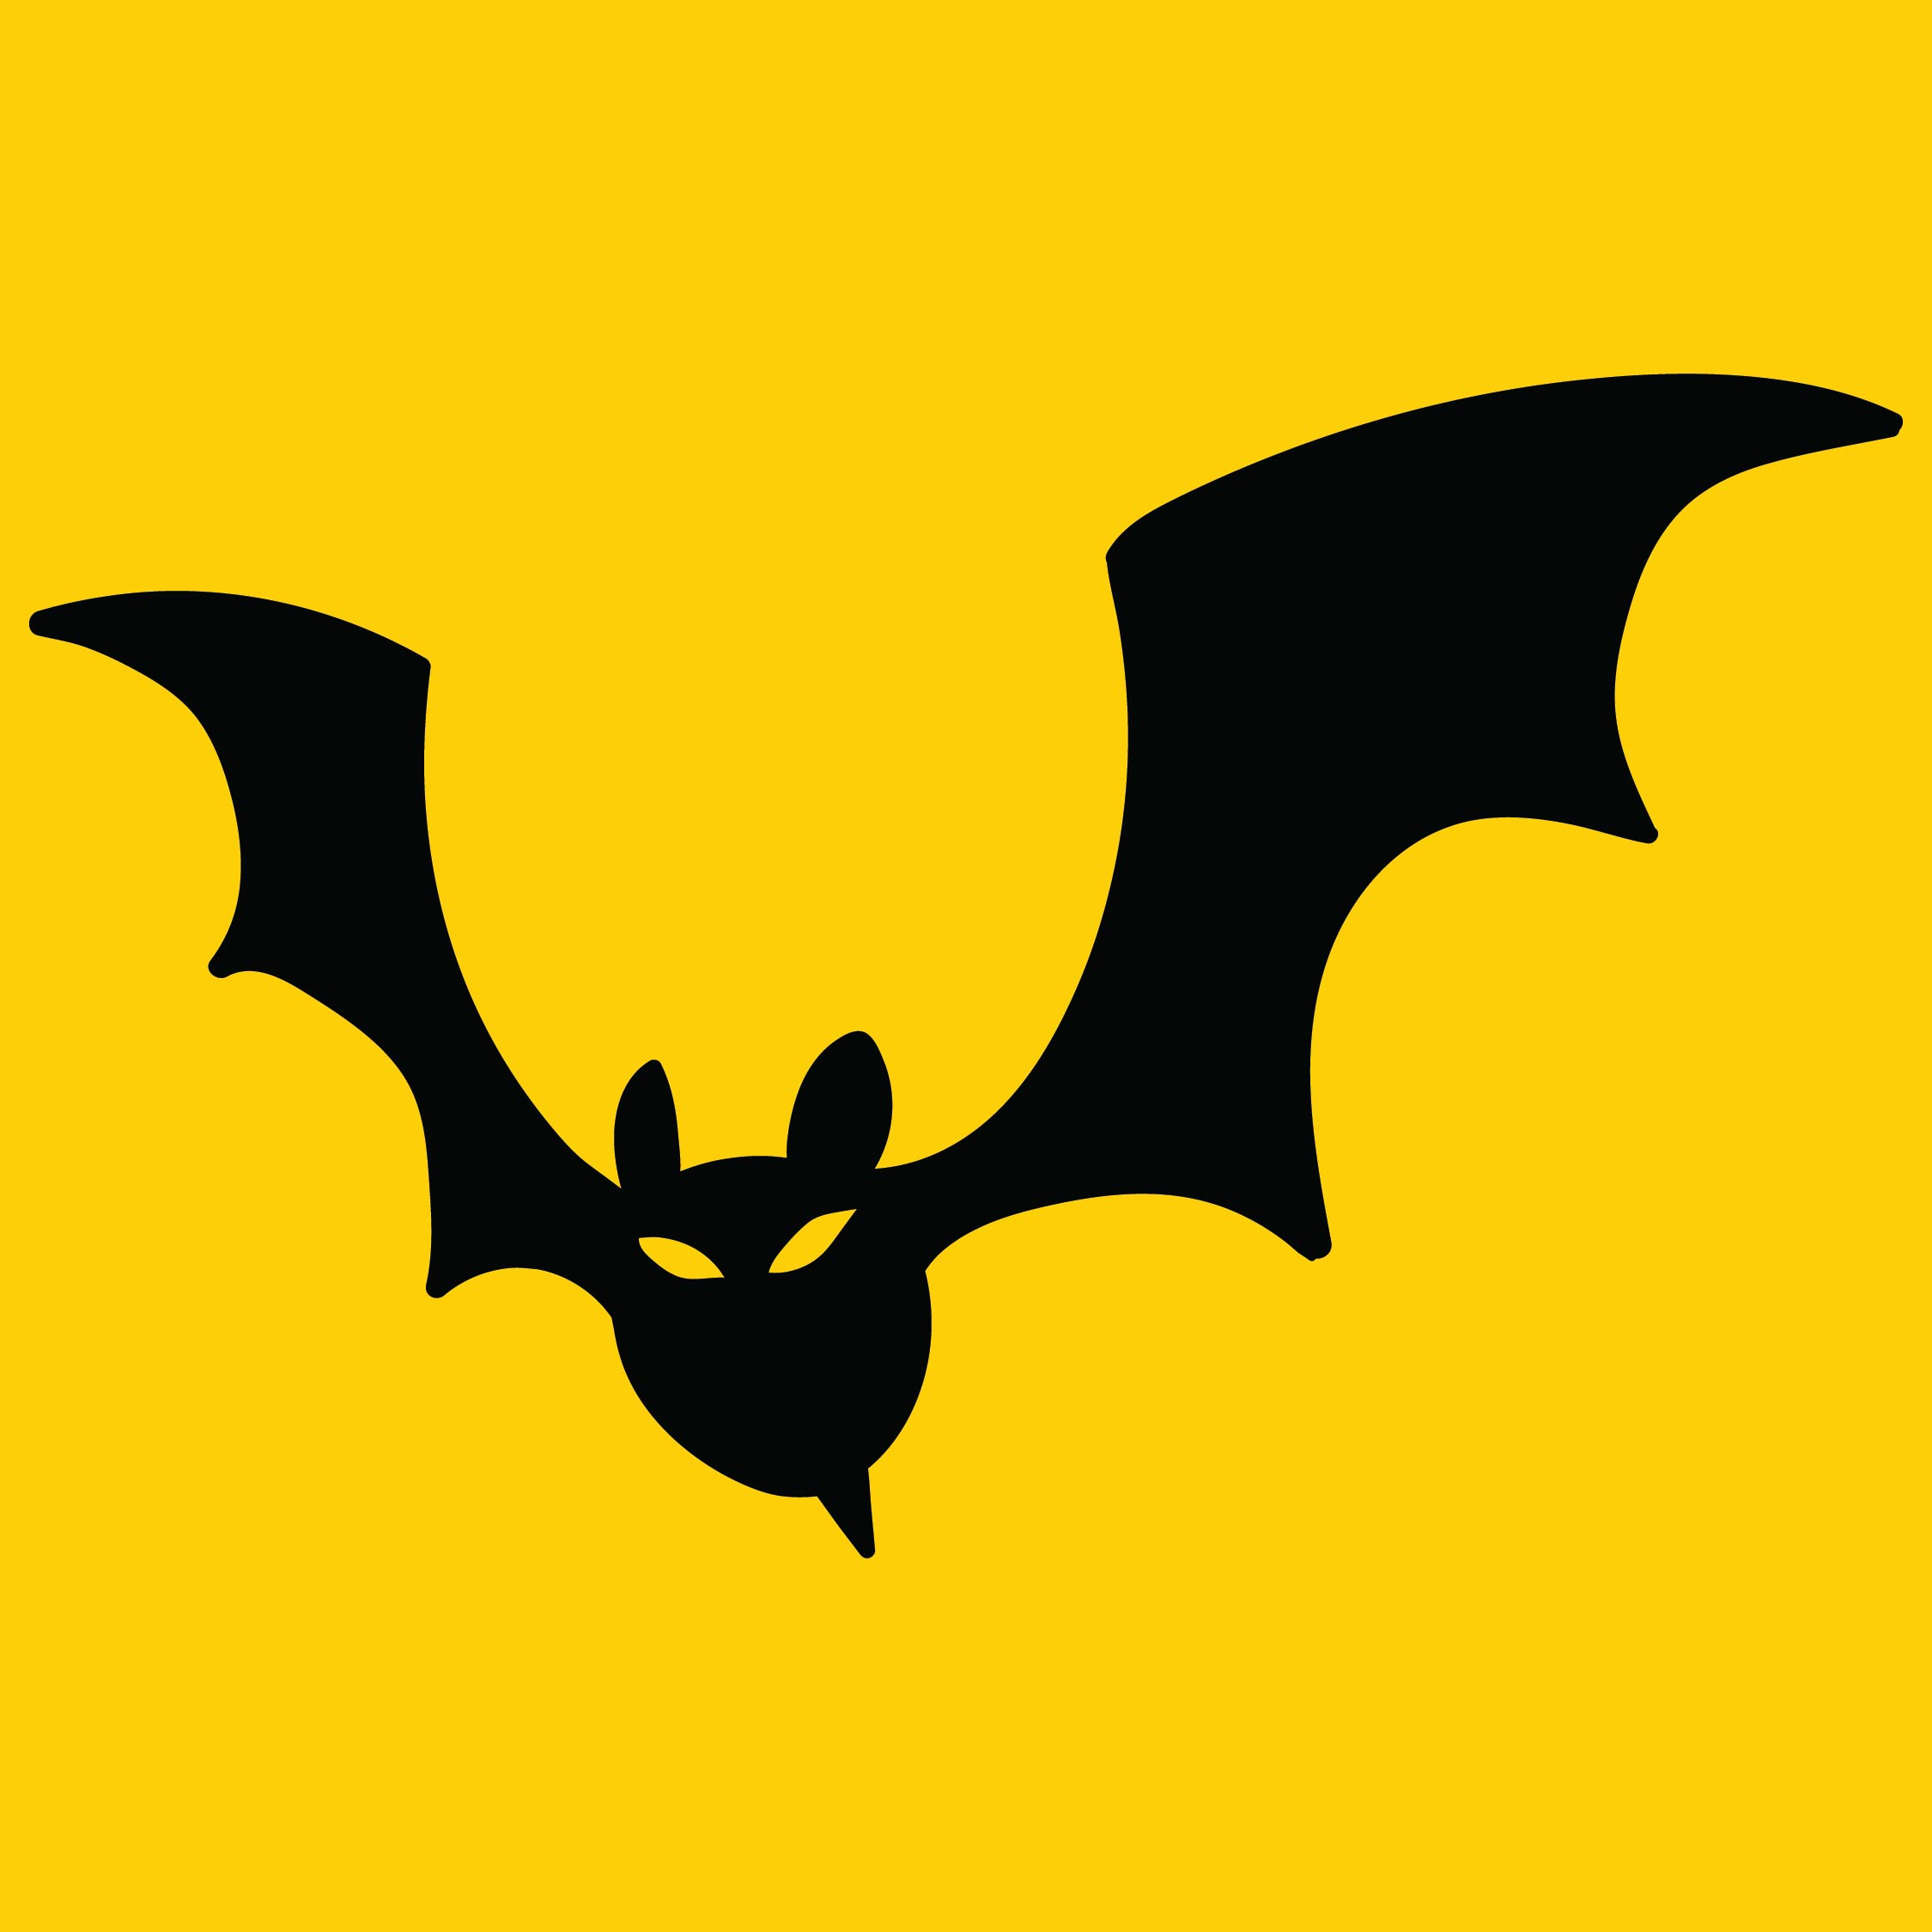 Halloween Bat Outline Clip Art